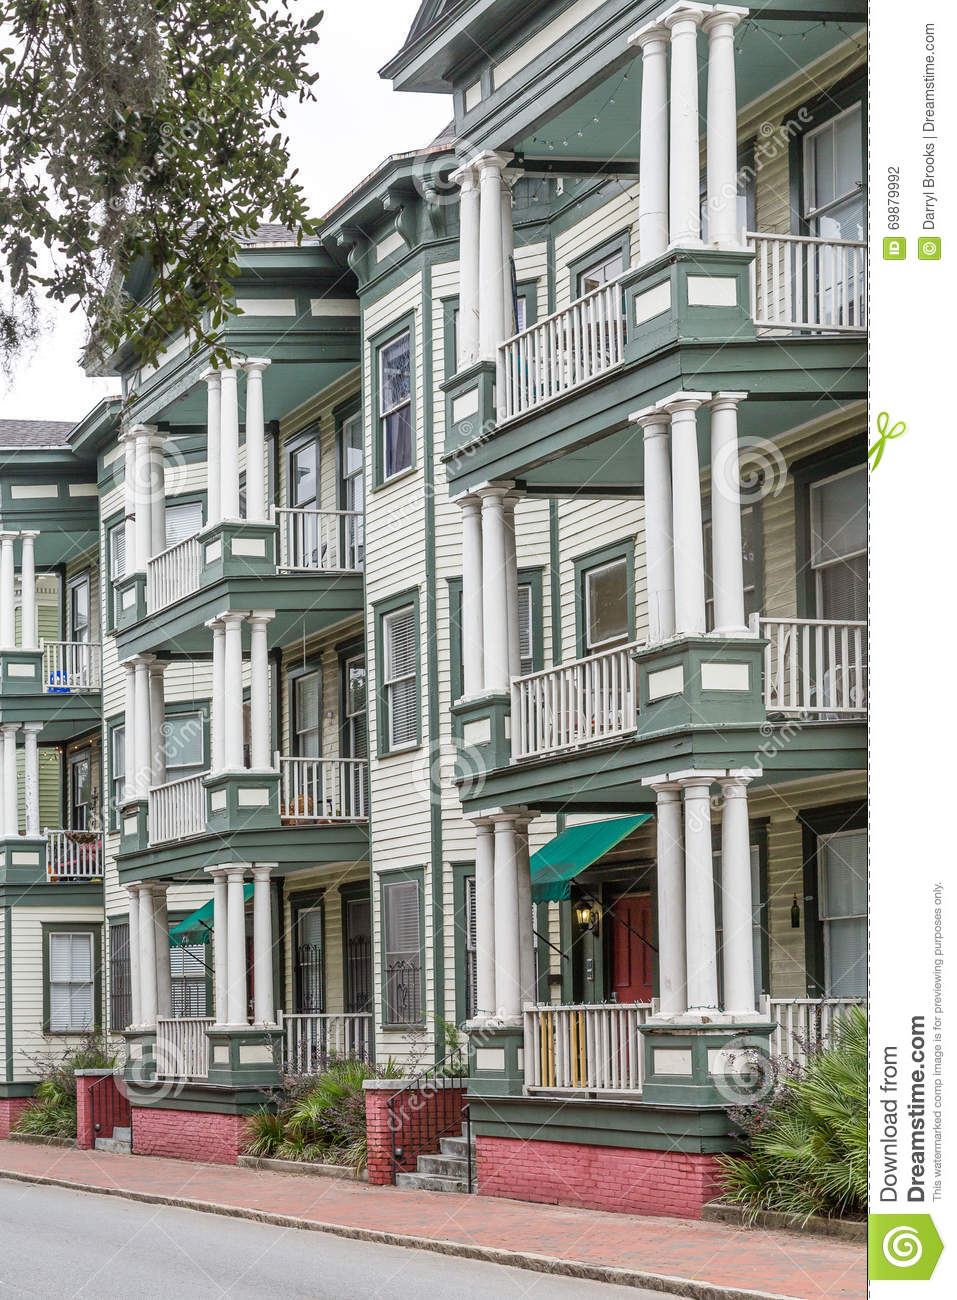 Homes With Columns old green and white homes with columns and balconies stock photo